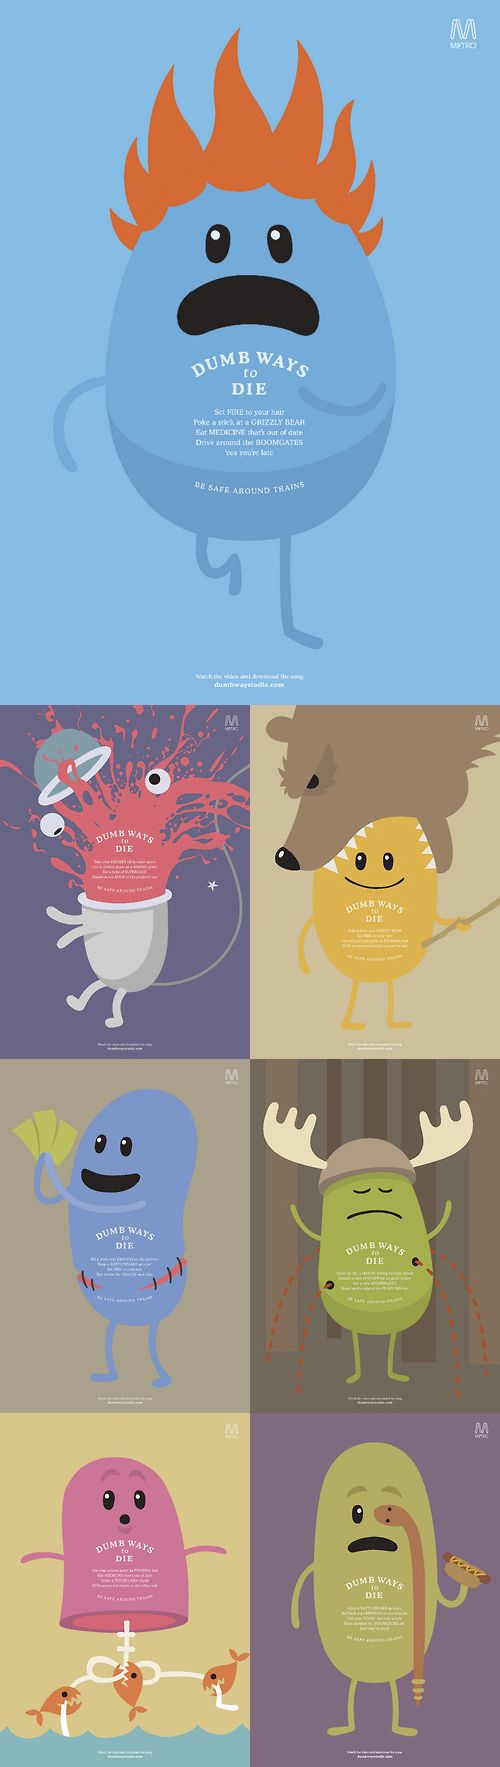 Dumb ways to die illustrations